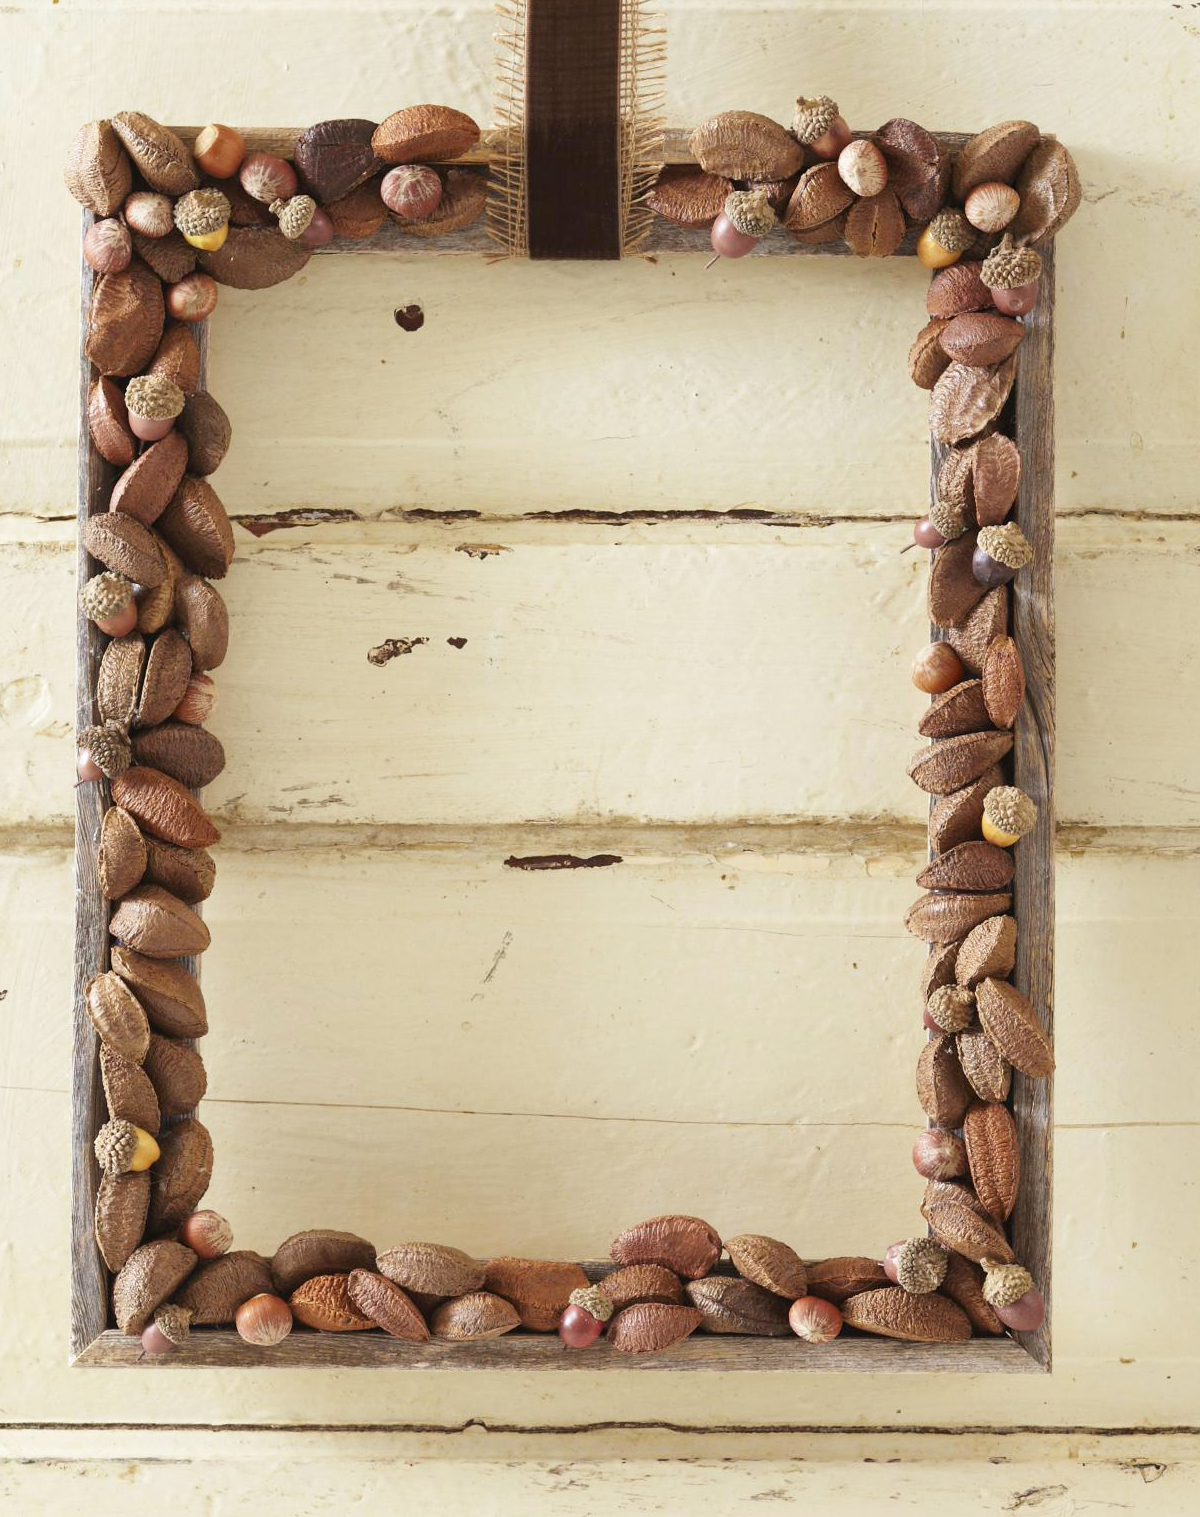 Mixed-nut wreath